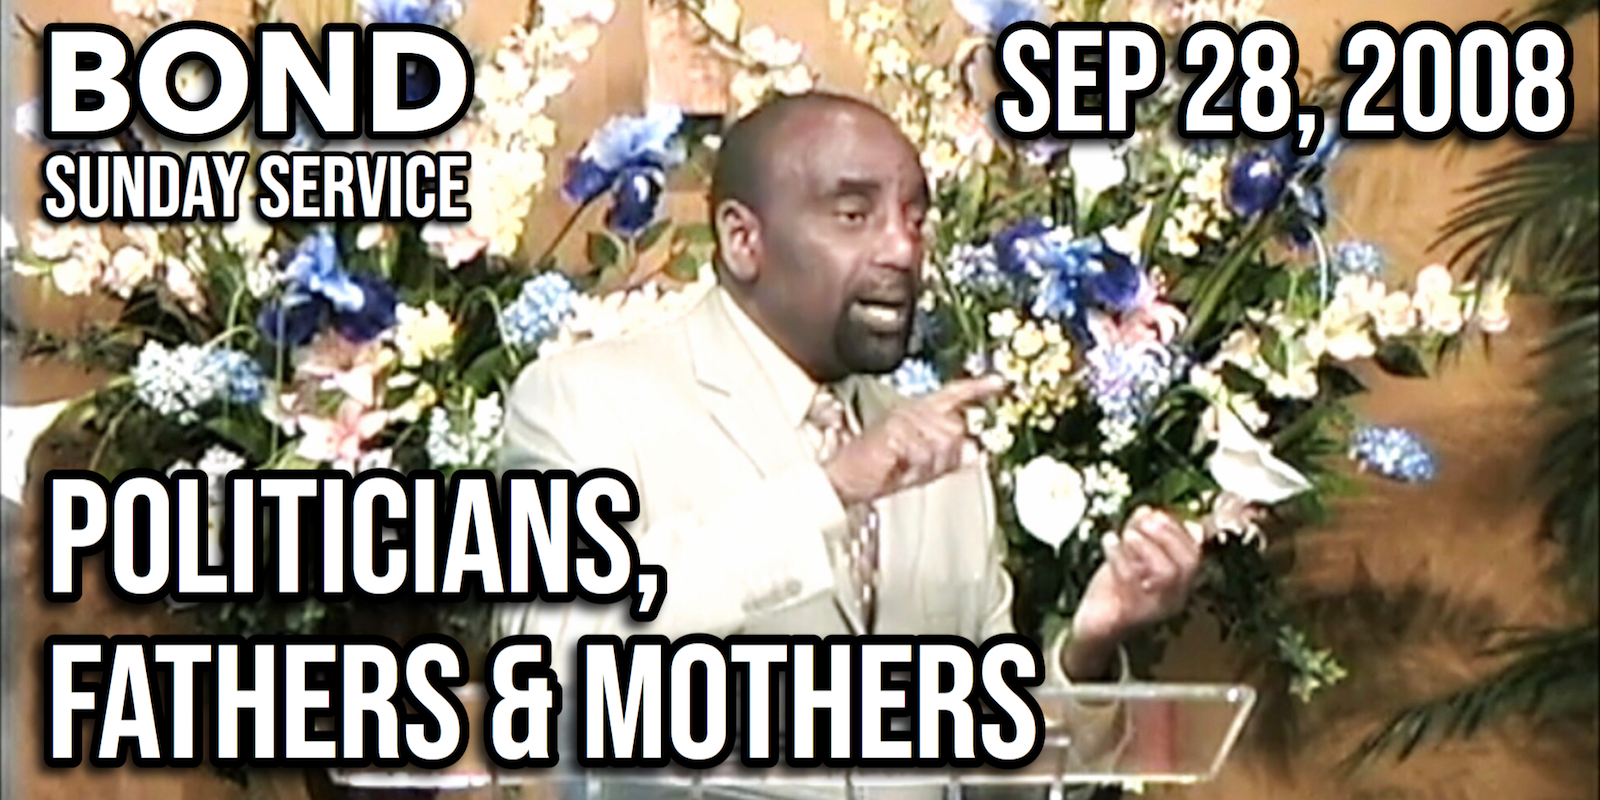 Politicians, Fathers & Mothers (Sunday Service, Sep 28, 2008)